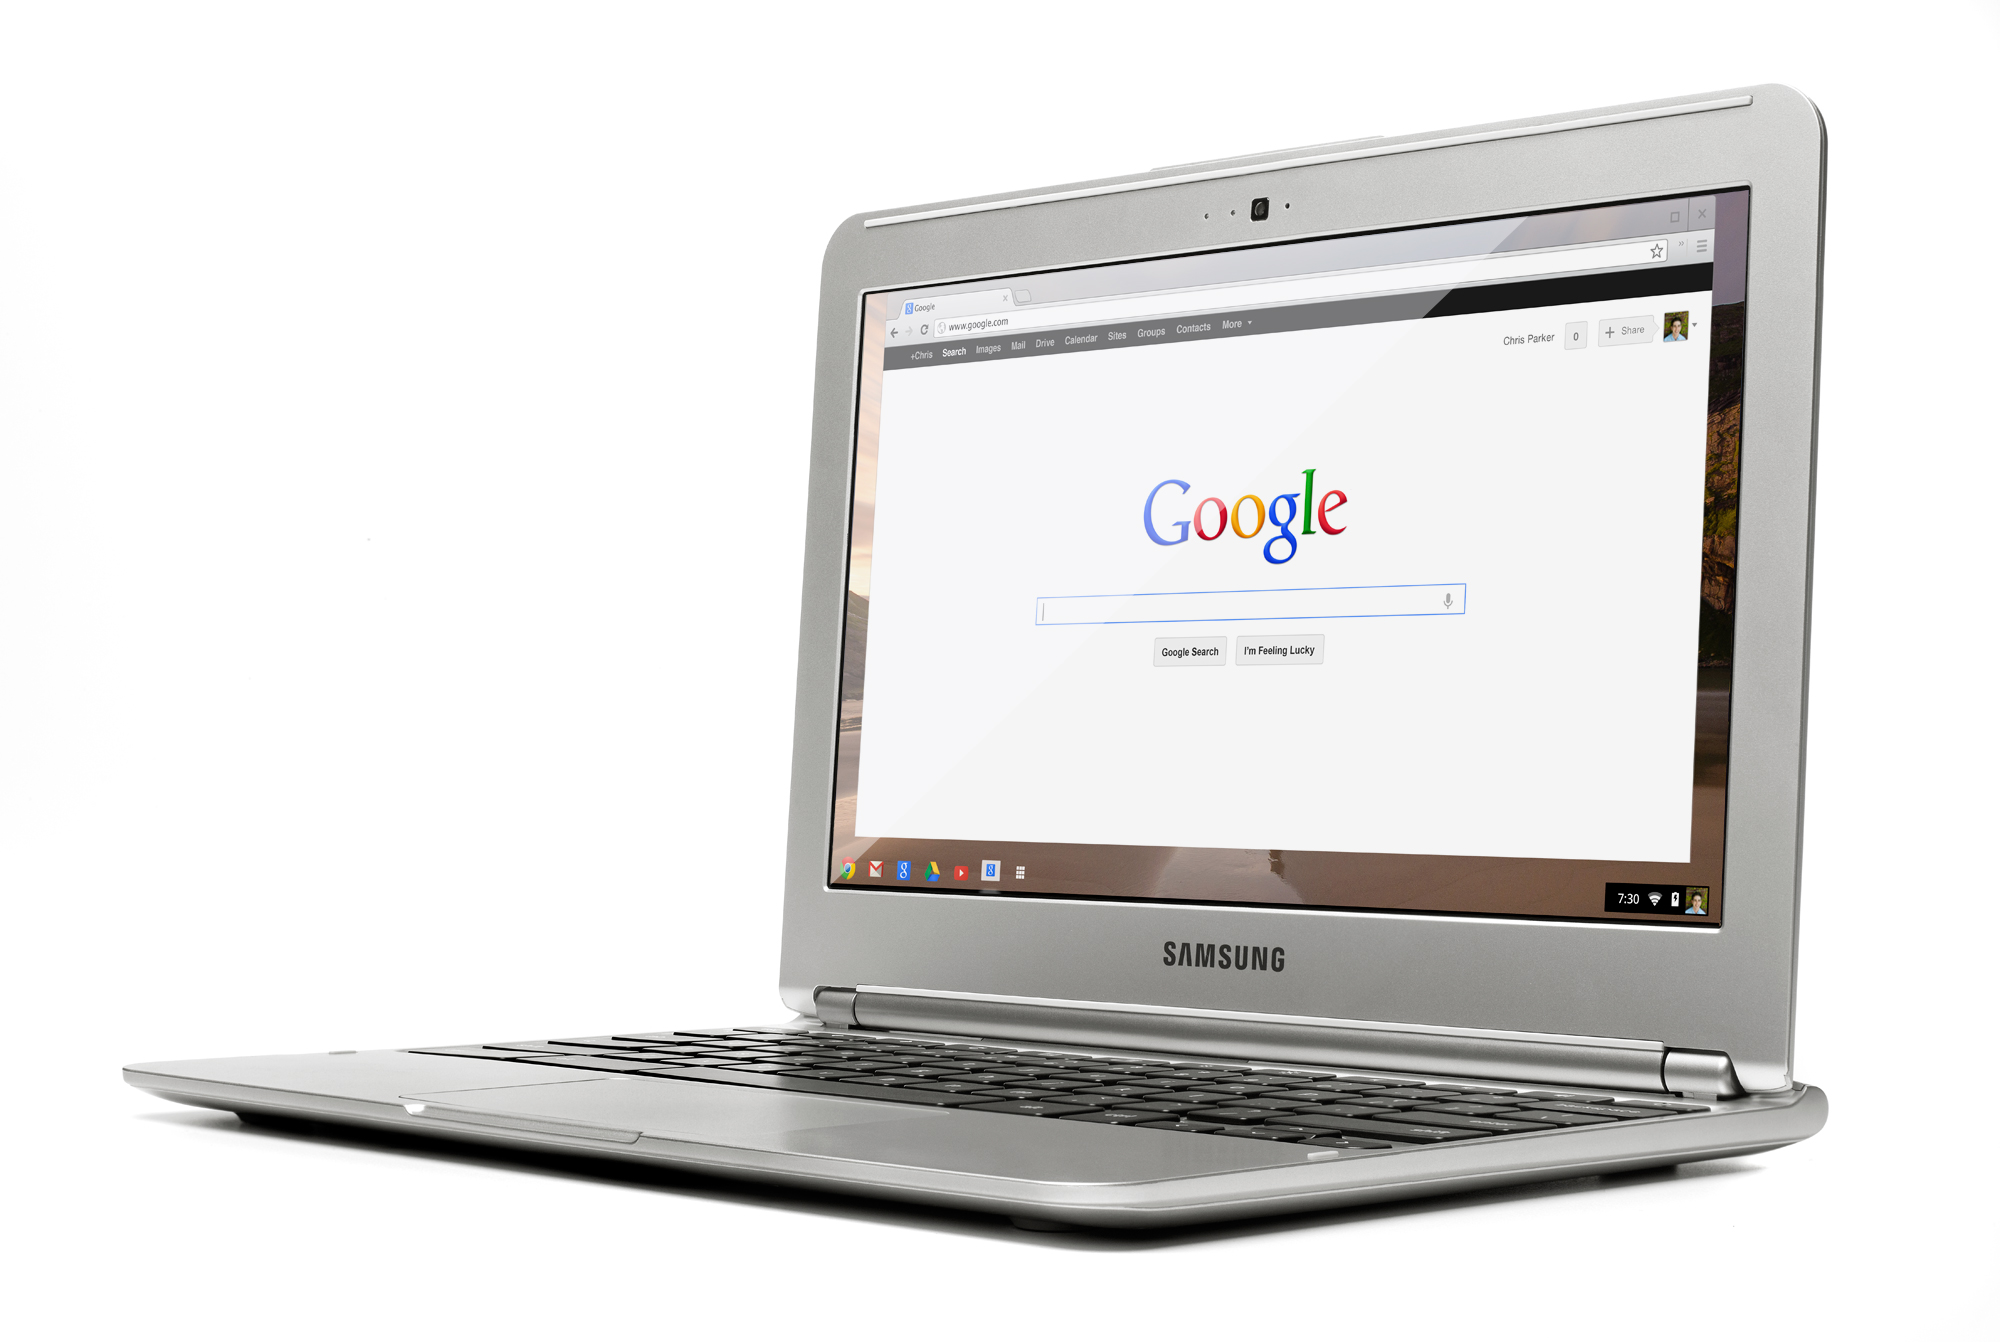 samsung chromebook frontview2 webres - Les Chromebook arrivent chez Future Shop!